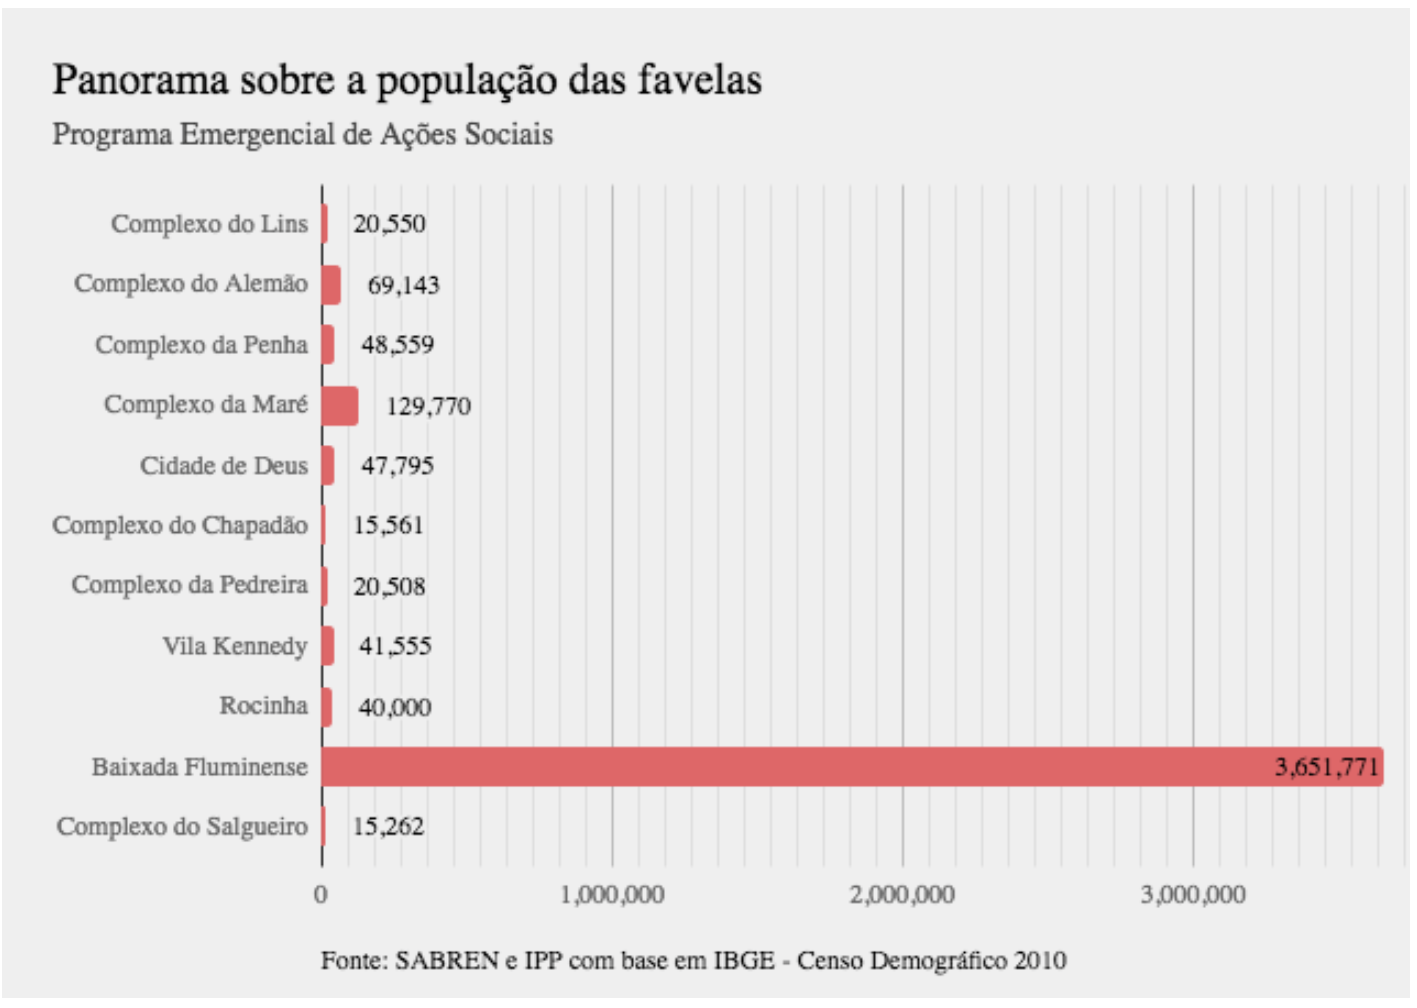 Panorama of populations in favelas designated for the Emergency Program for Social Actions. Source: SABREN and IPP with data from IGBE / 2010 Census.